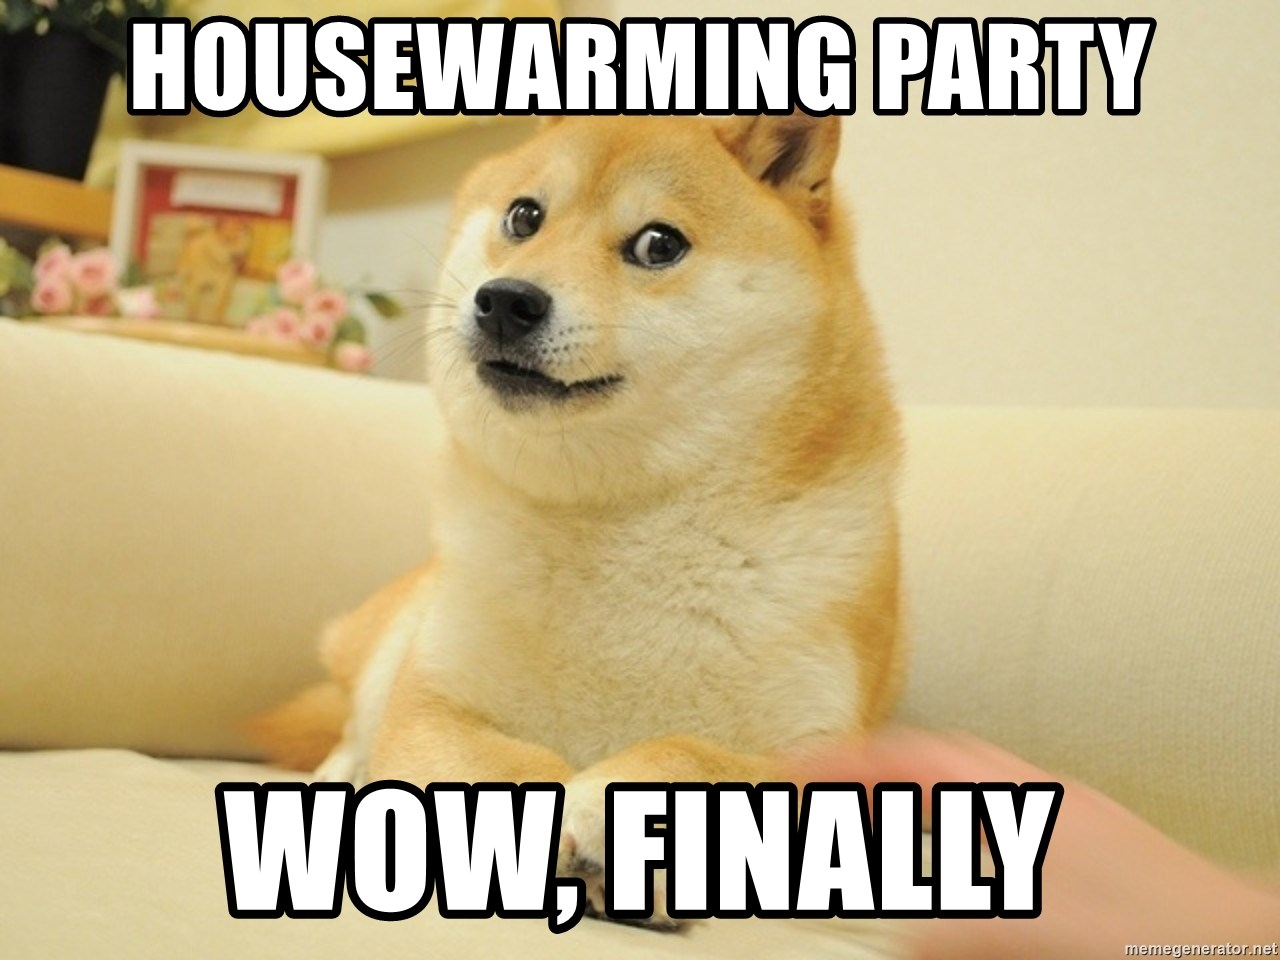 Housewarming Party Wow Finally Shiba Dog Meme Generator